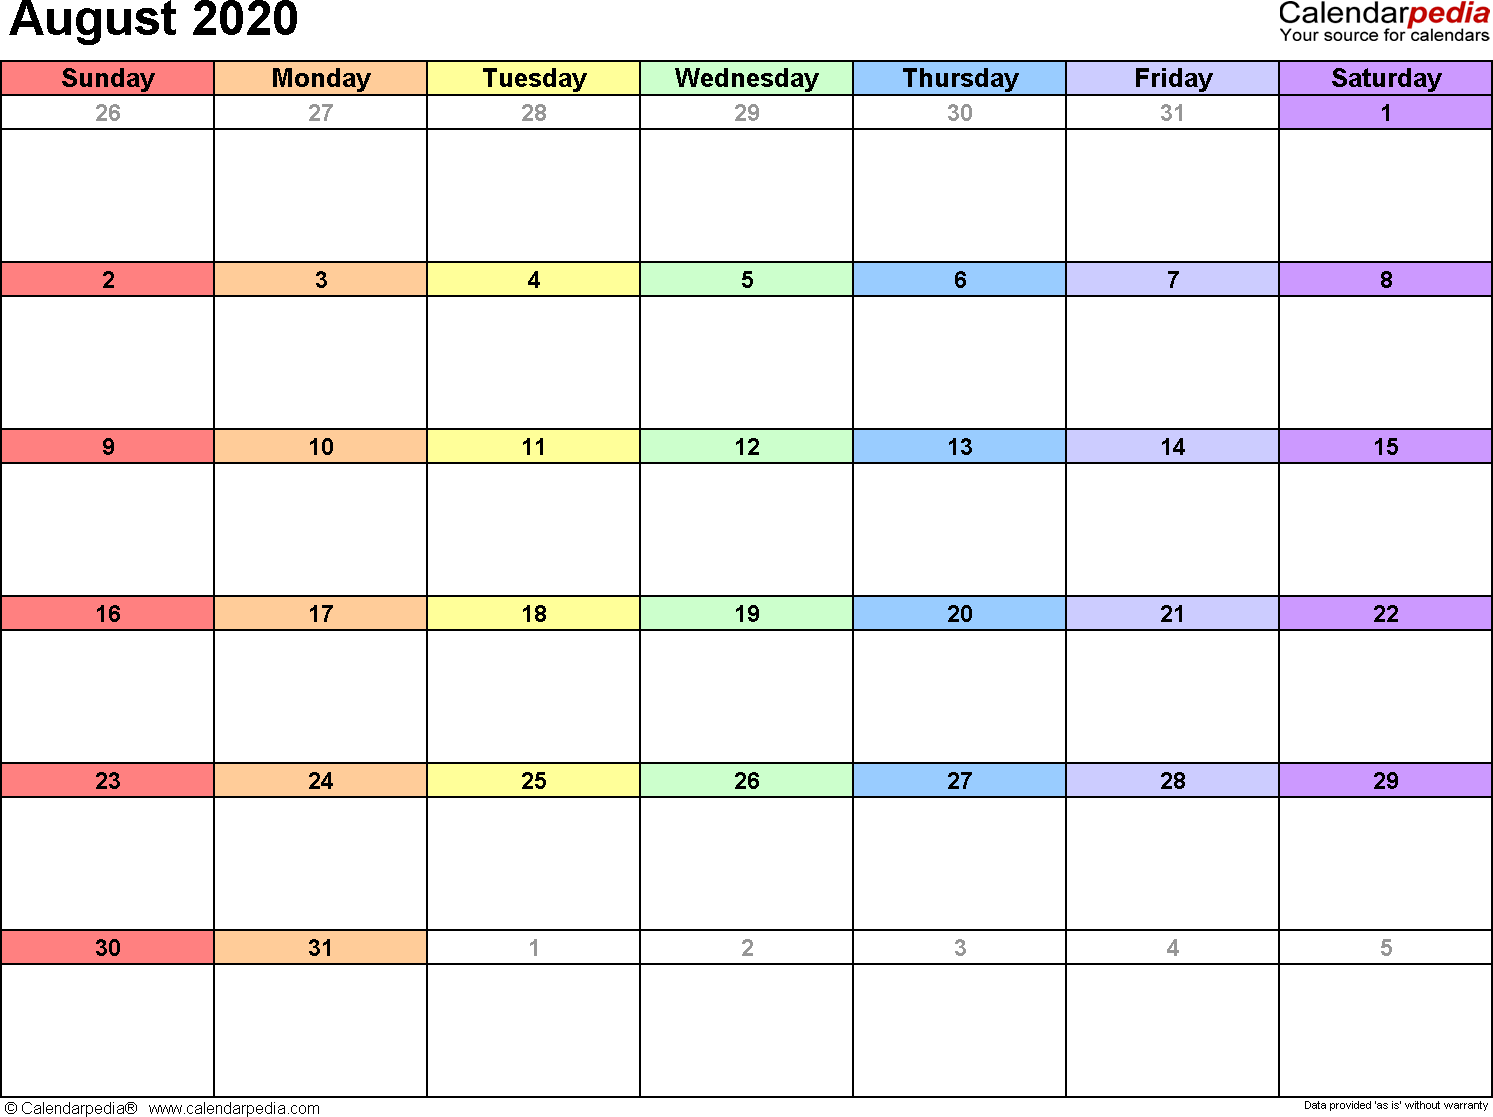 August 2020 Calendar Printable August 2020 Calendars for Word, Excel & PDF